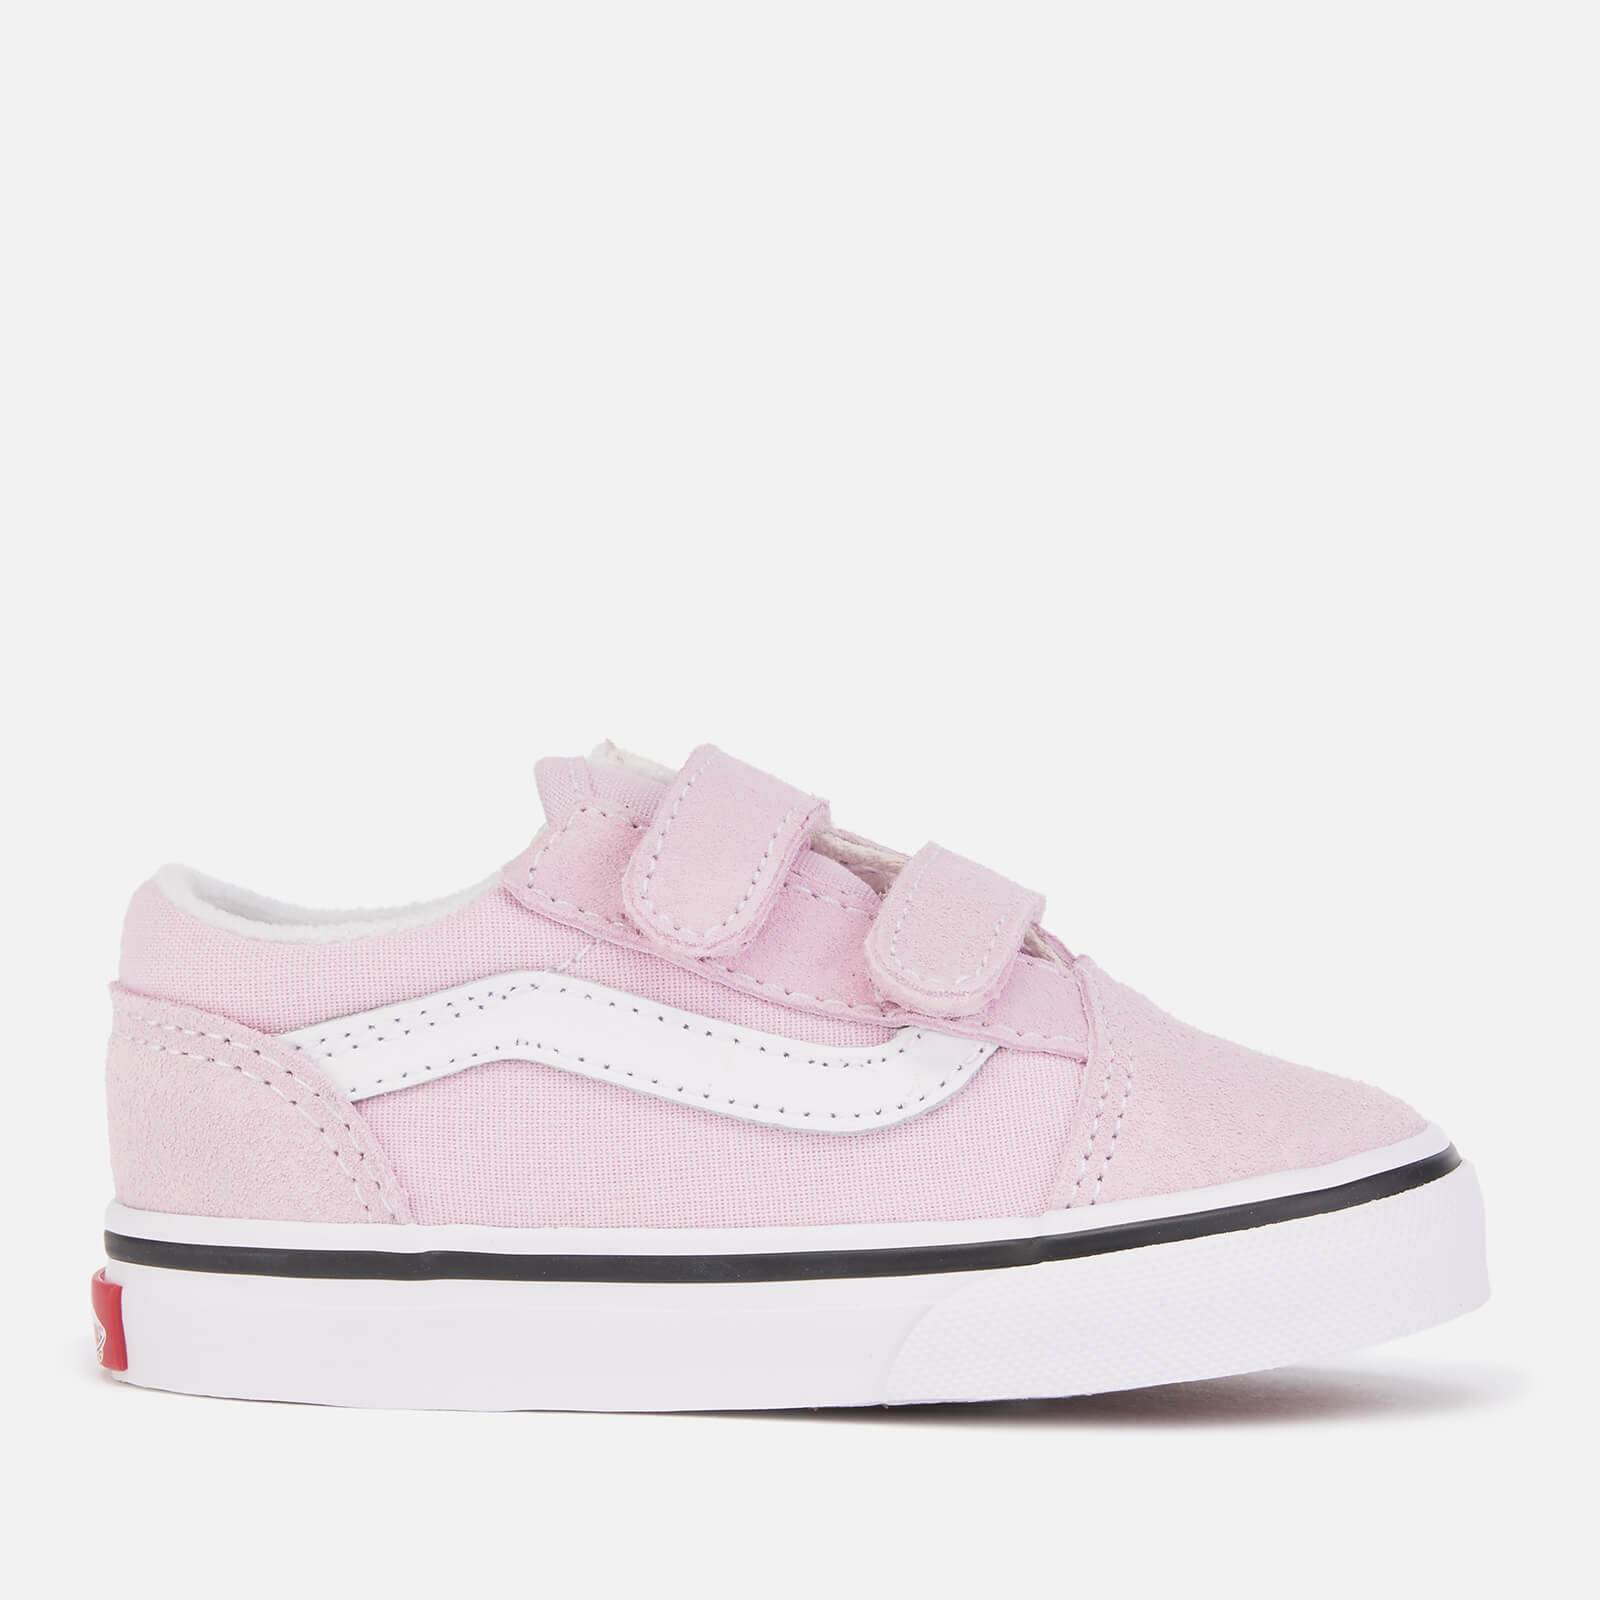 Vans Toddlers' Old Skool Velcro Trainers - Lilac Snow/True White - UK 7 Toddler